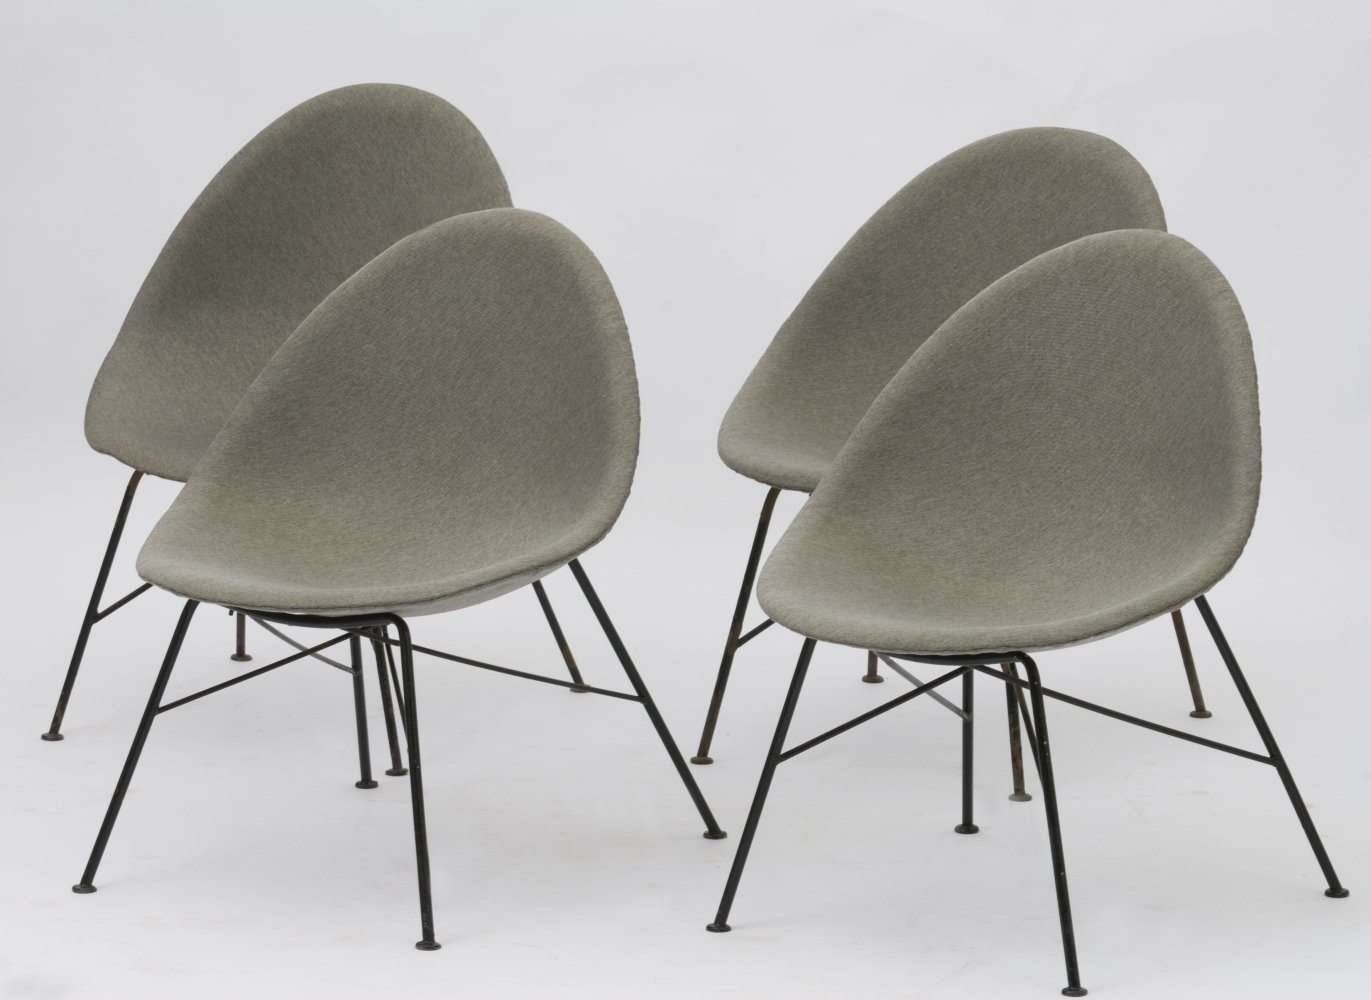 Set of 4 vintage lounge chairs, 1960s